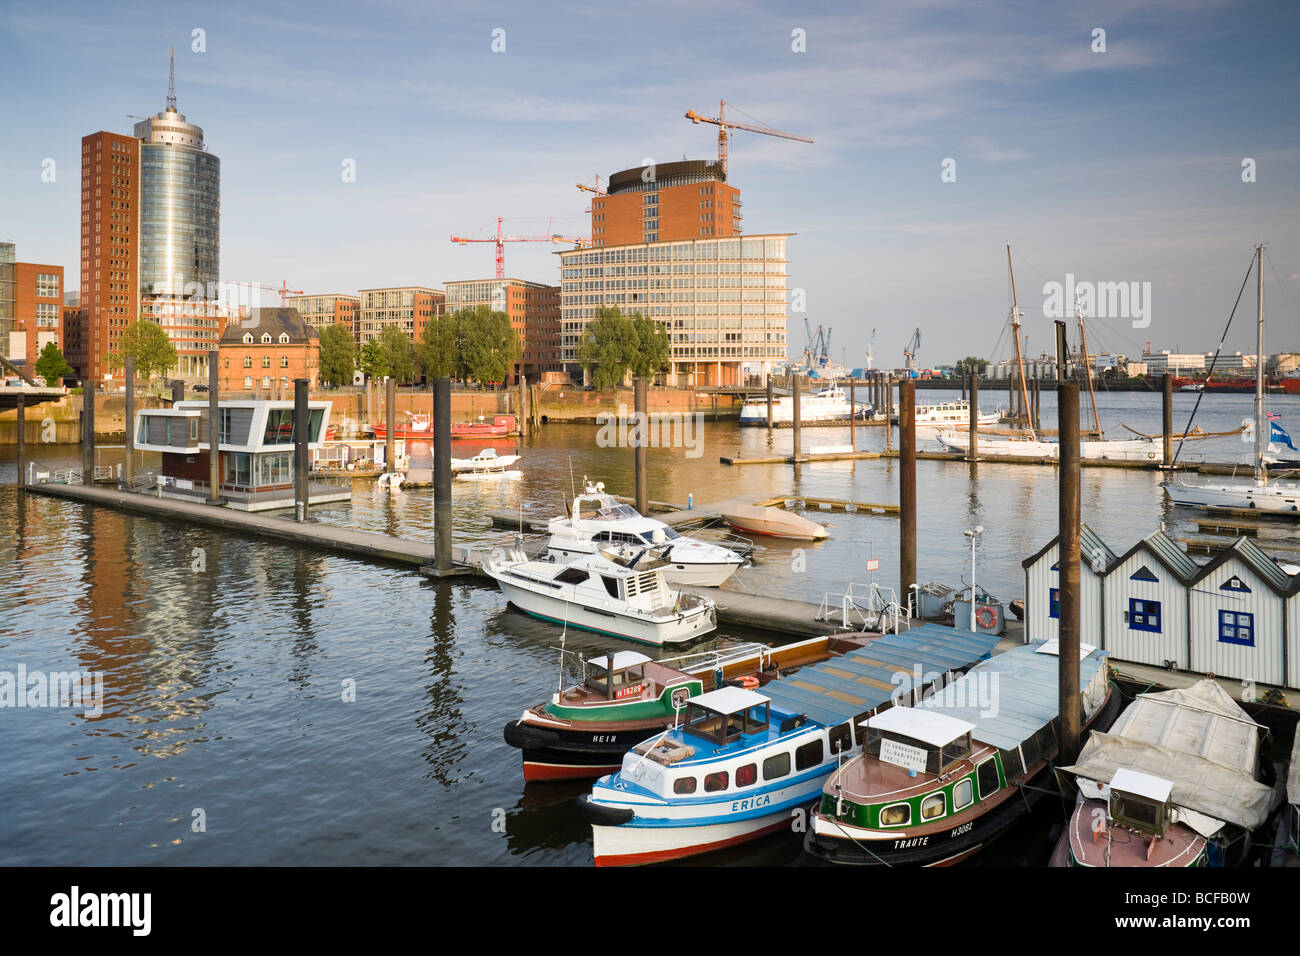 Germany, State of Hamburg, Hamburg, Hafen City new commercial district - Stock Image